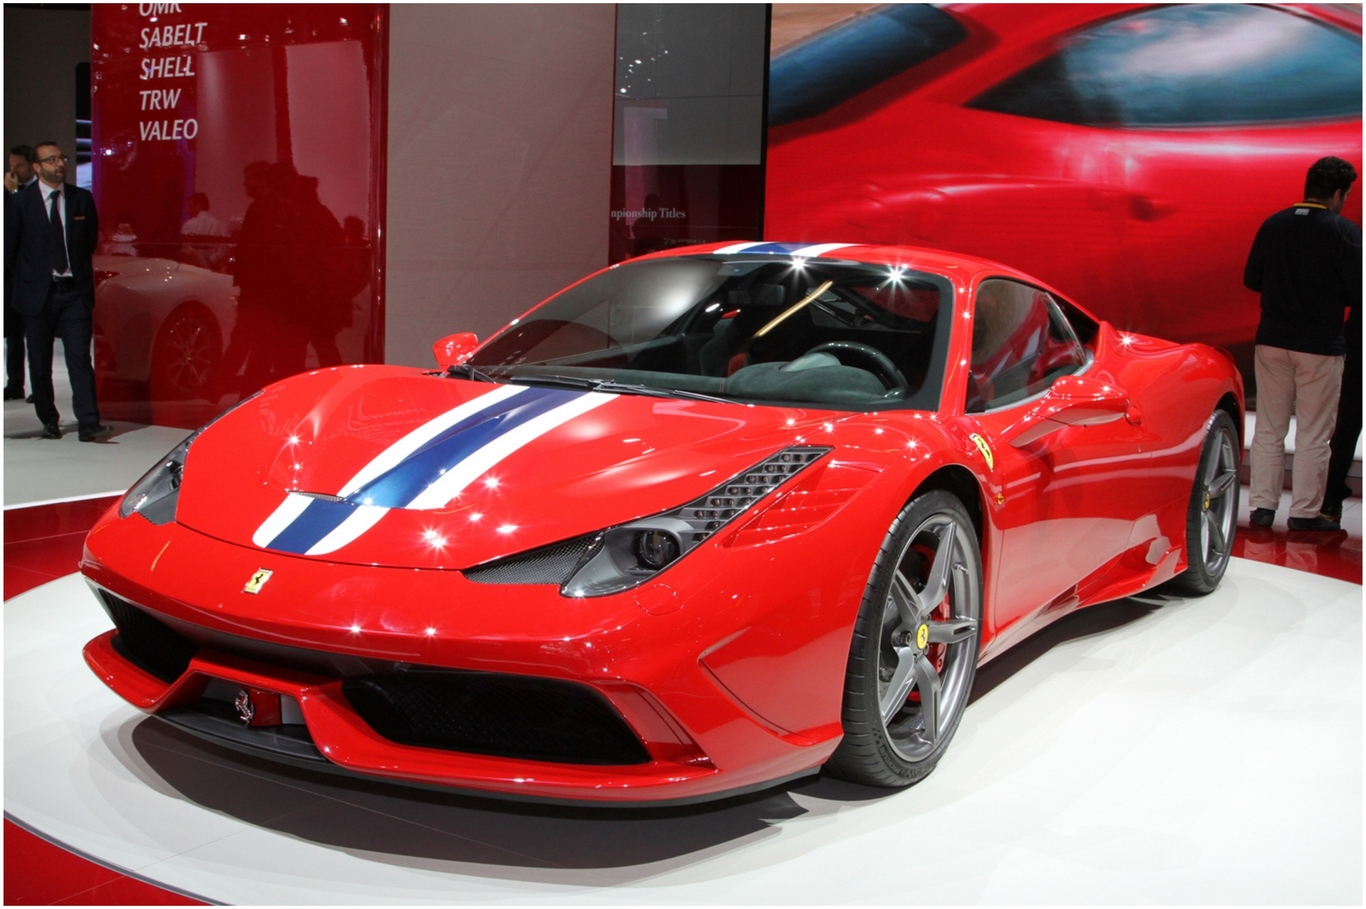 2016 Ferrari 458 Speciale hd Car Wallpapers